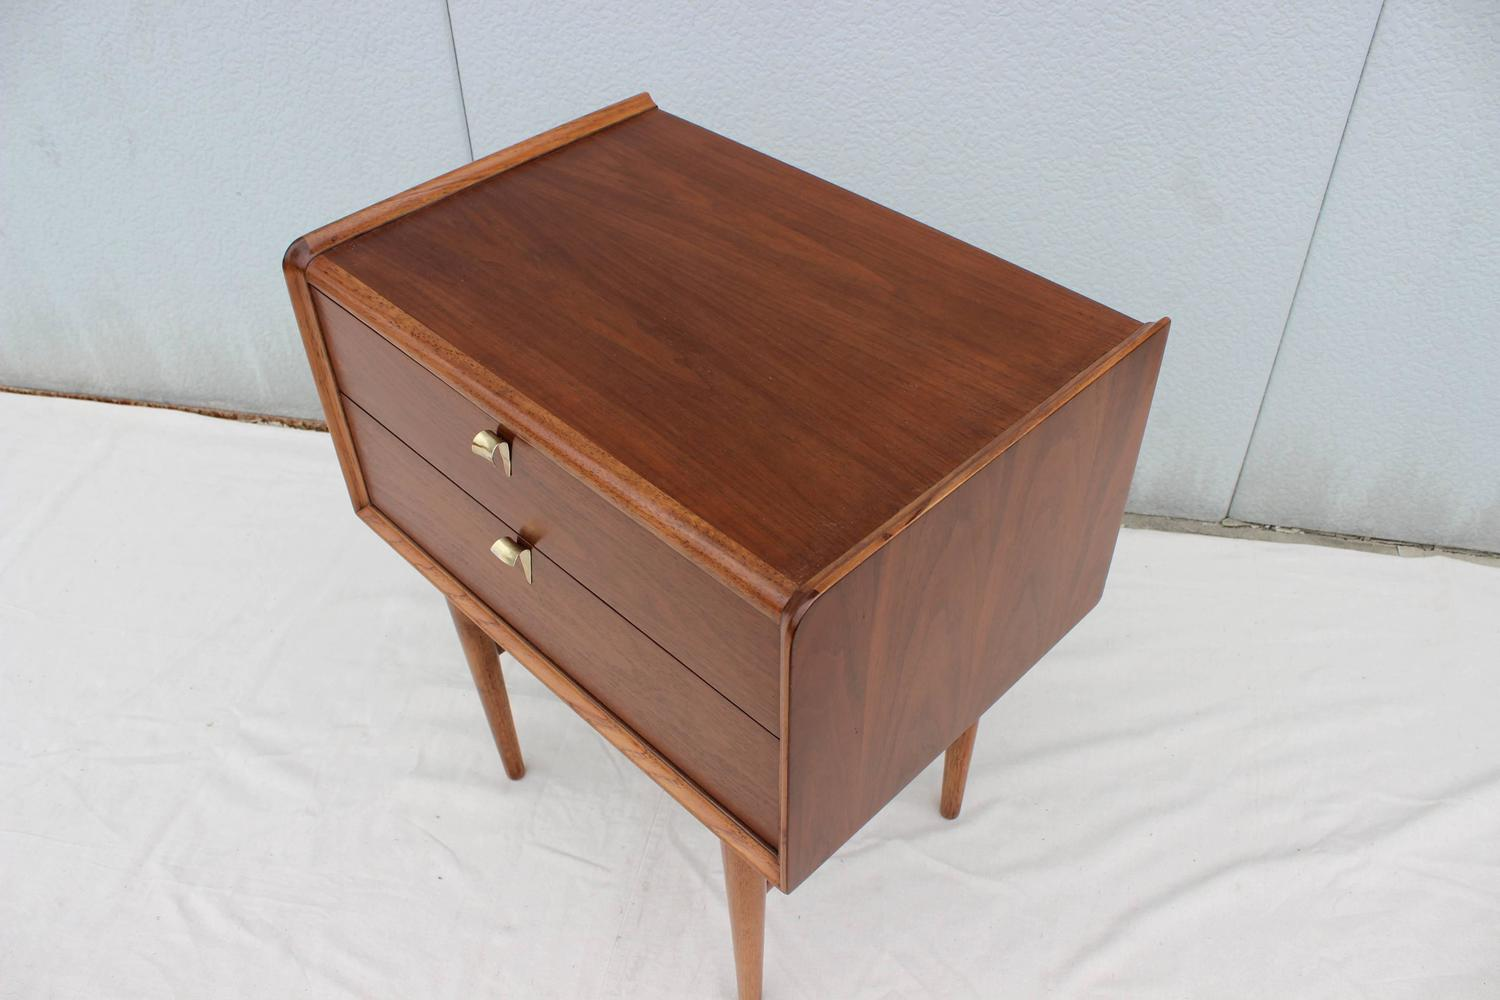 Tall Mid Century Modern Walnut Two Drawer Night Stands For Sale at 1stdibs